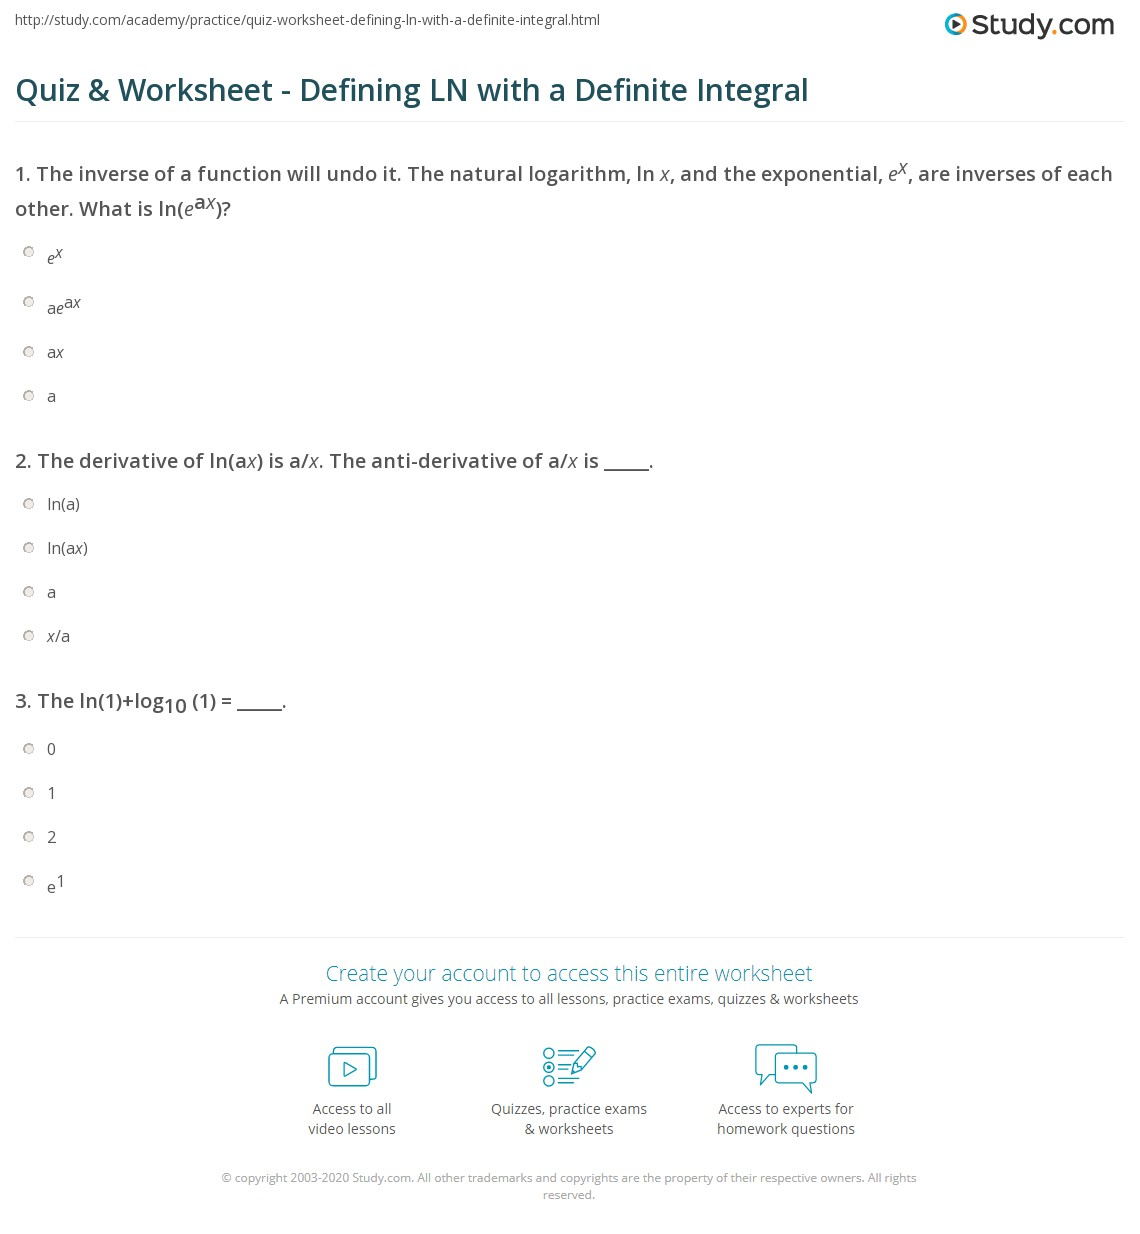 Quiz & Worksheet - Defining LN with a Definite Integral | Study.com